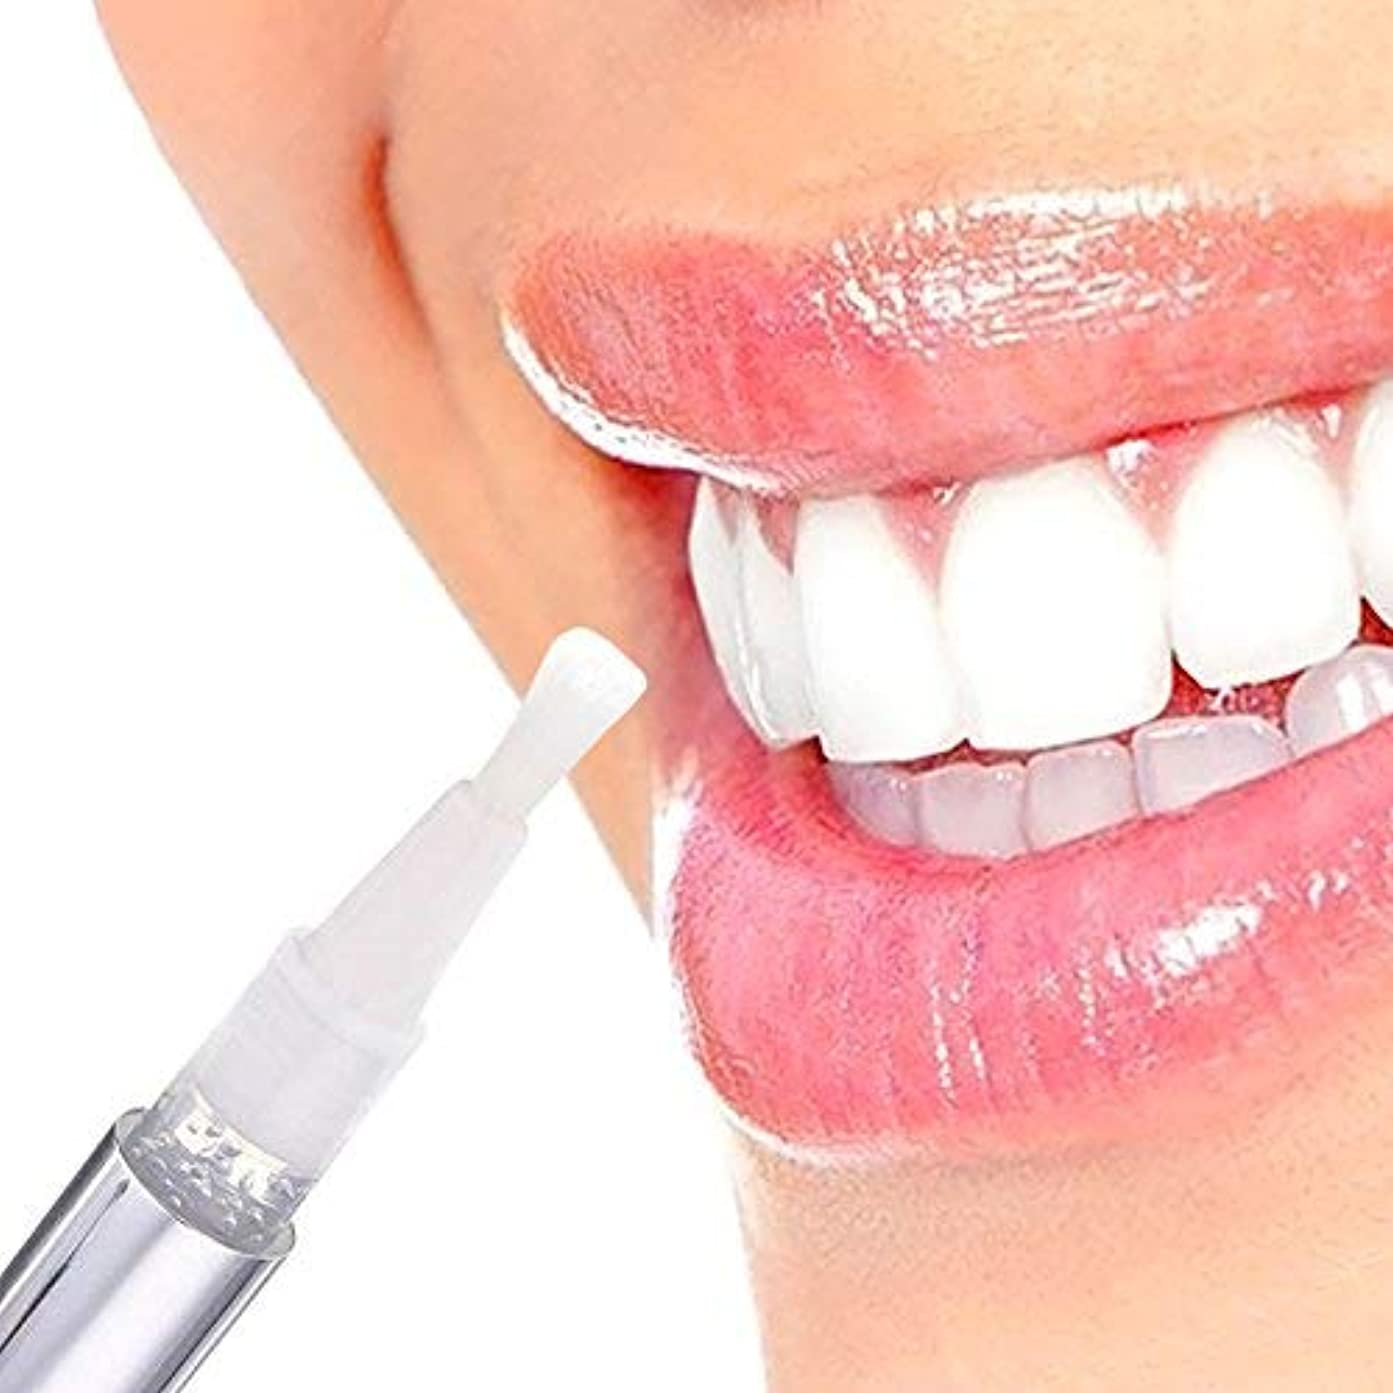 パースセミナーホストNat 1PCS Hot Creative Effective Teeth Whitening Pen Tooth Gel Whitener Bleach Stain Eraser Sexy Celebrity Smile...